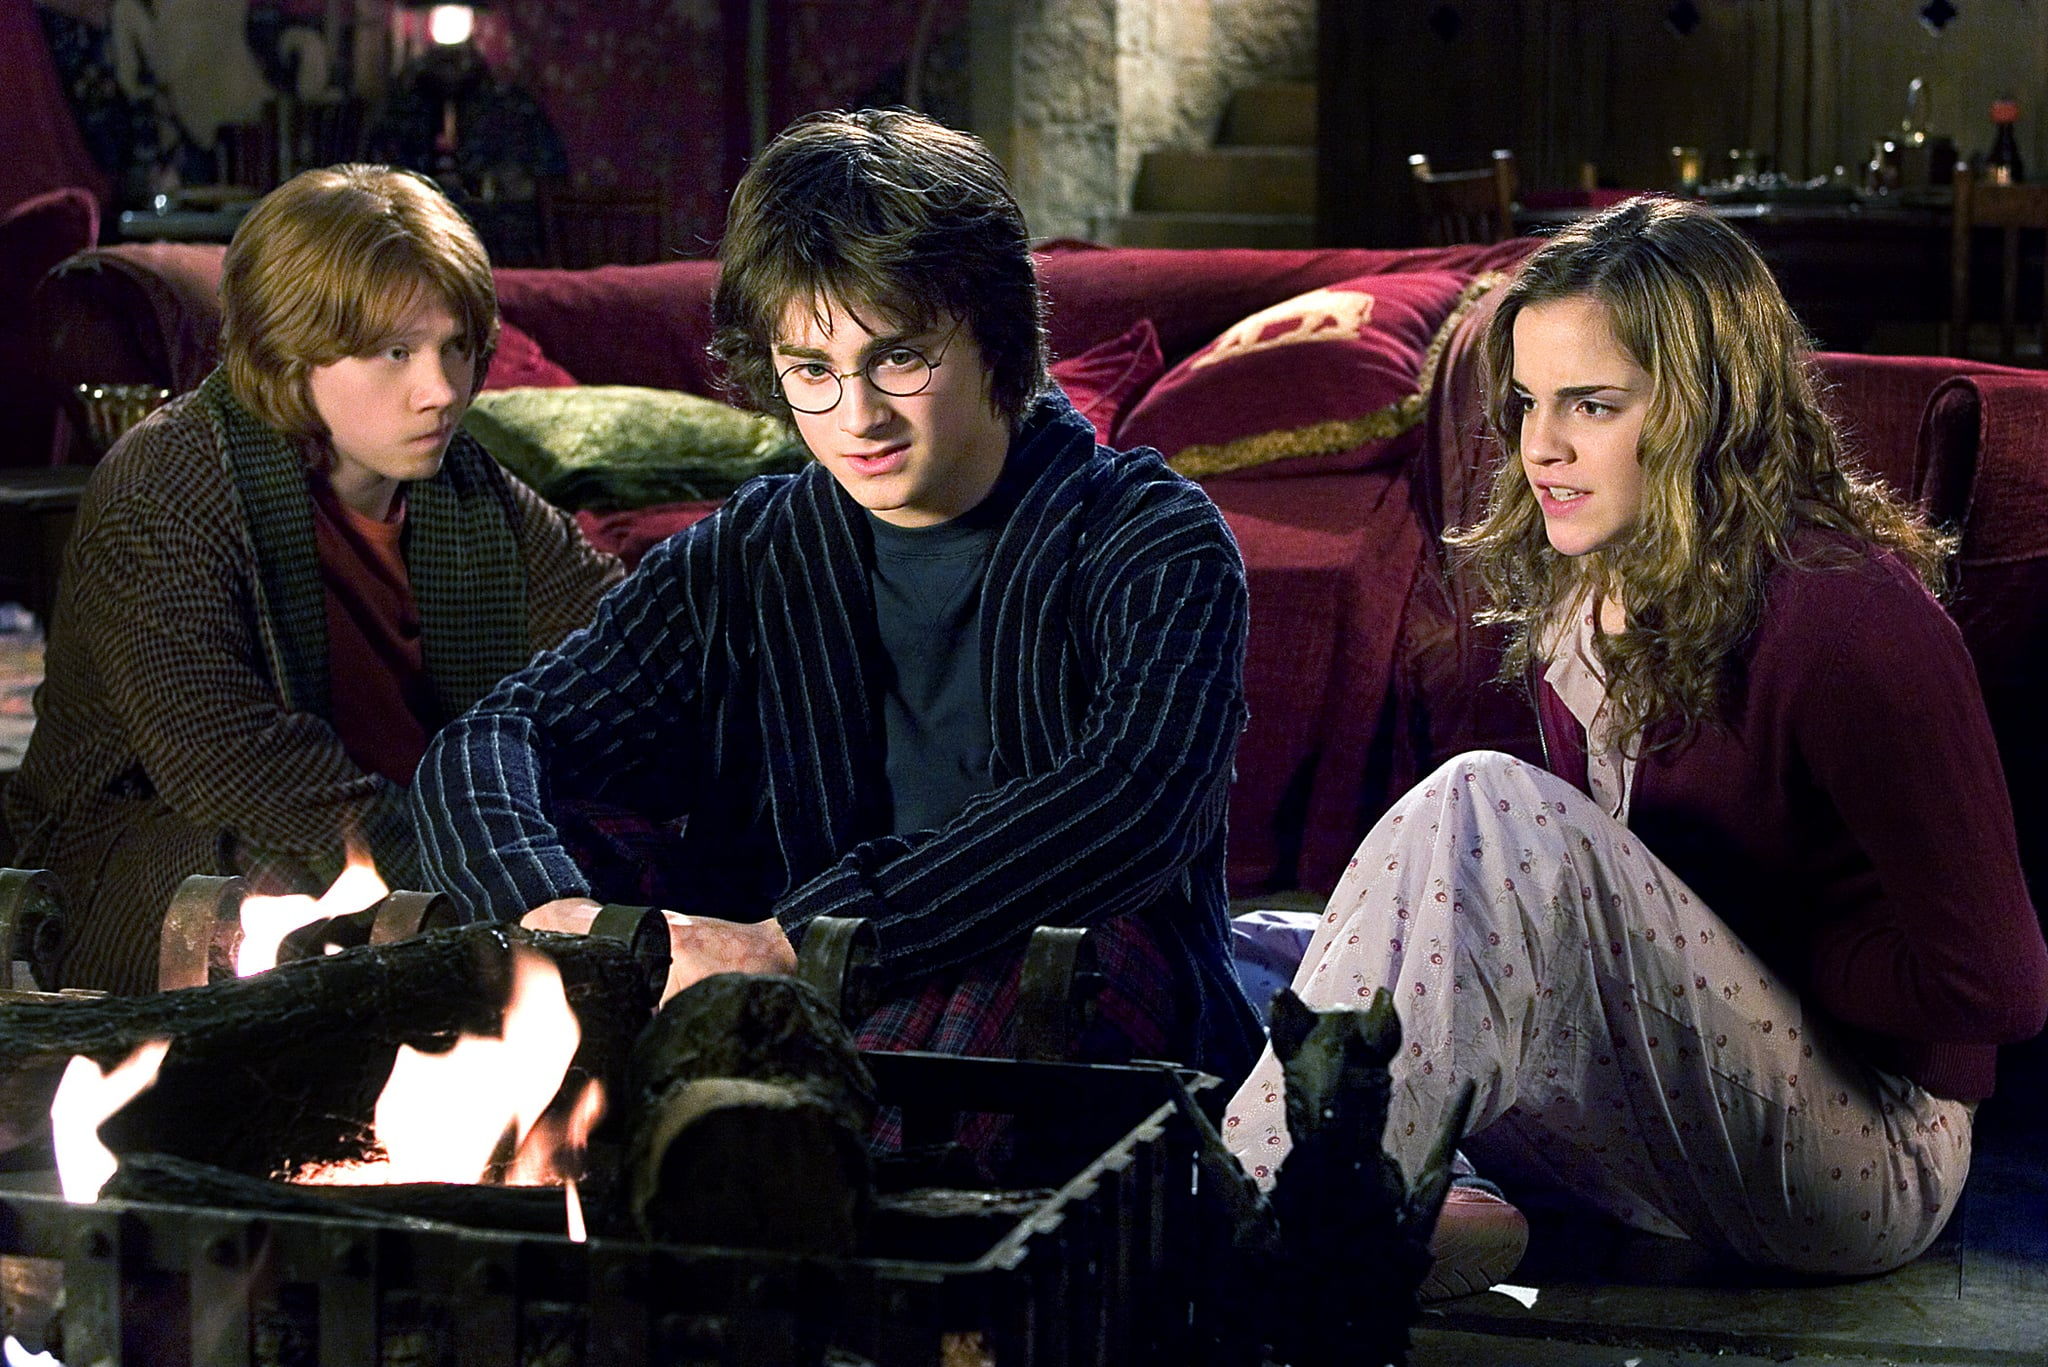 HARRY POTTER AND THE GOBLET OF FIRE, Rupert Grint, daniel Radcliffe, Emma Watson, 2005, (c) Warner Brothers/courtesy Everett Collection